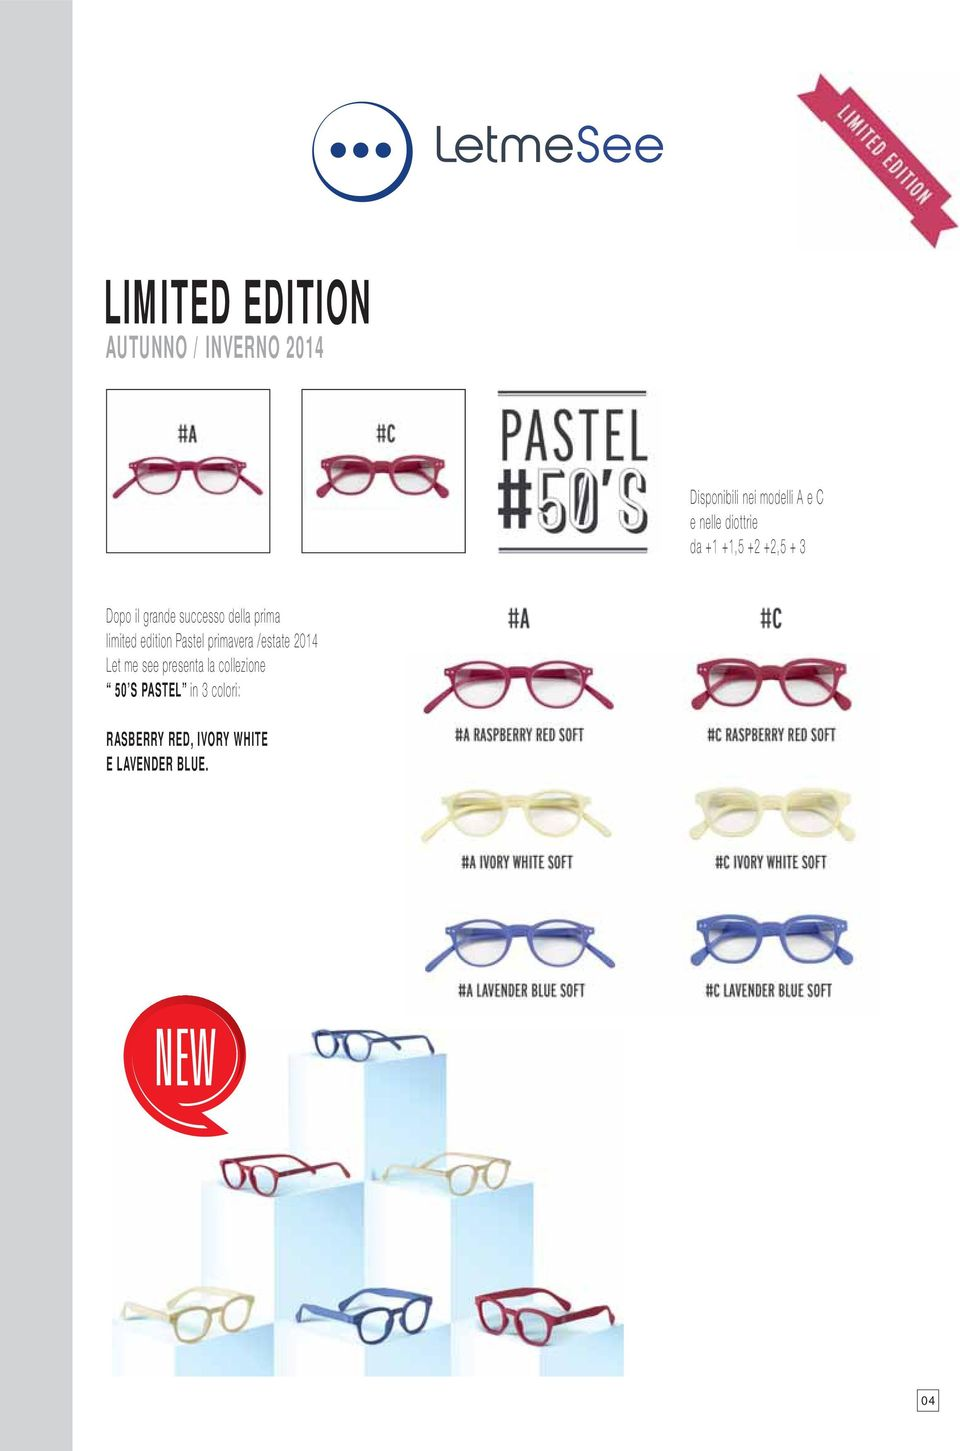 limited edition Pastel primavera /estate 2014 Let me see presenta la